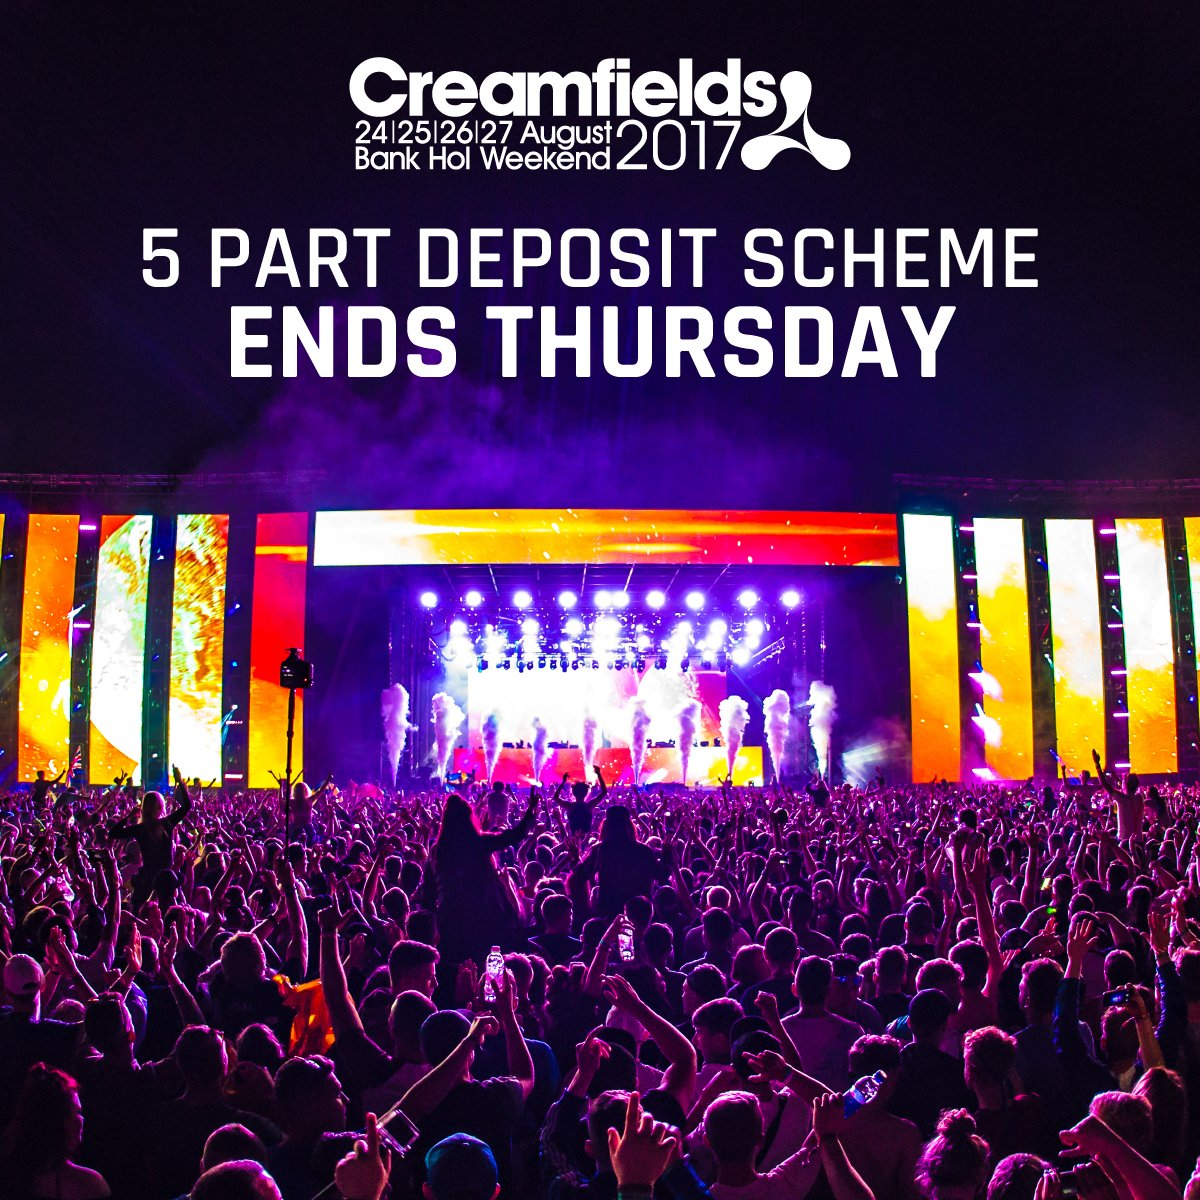 #Creamfields2017 - The FULL Line-up  Like & RT for a chance to win 5 x Gold 4 Day Camping Tickets https://t.co/KBlZcVFm5L